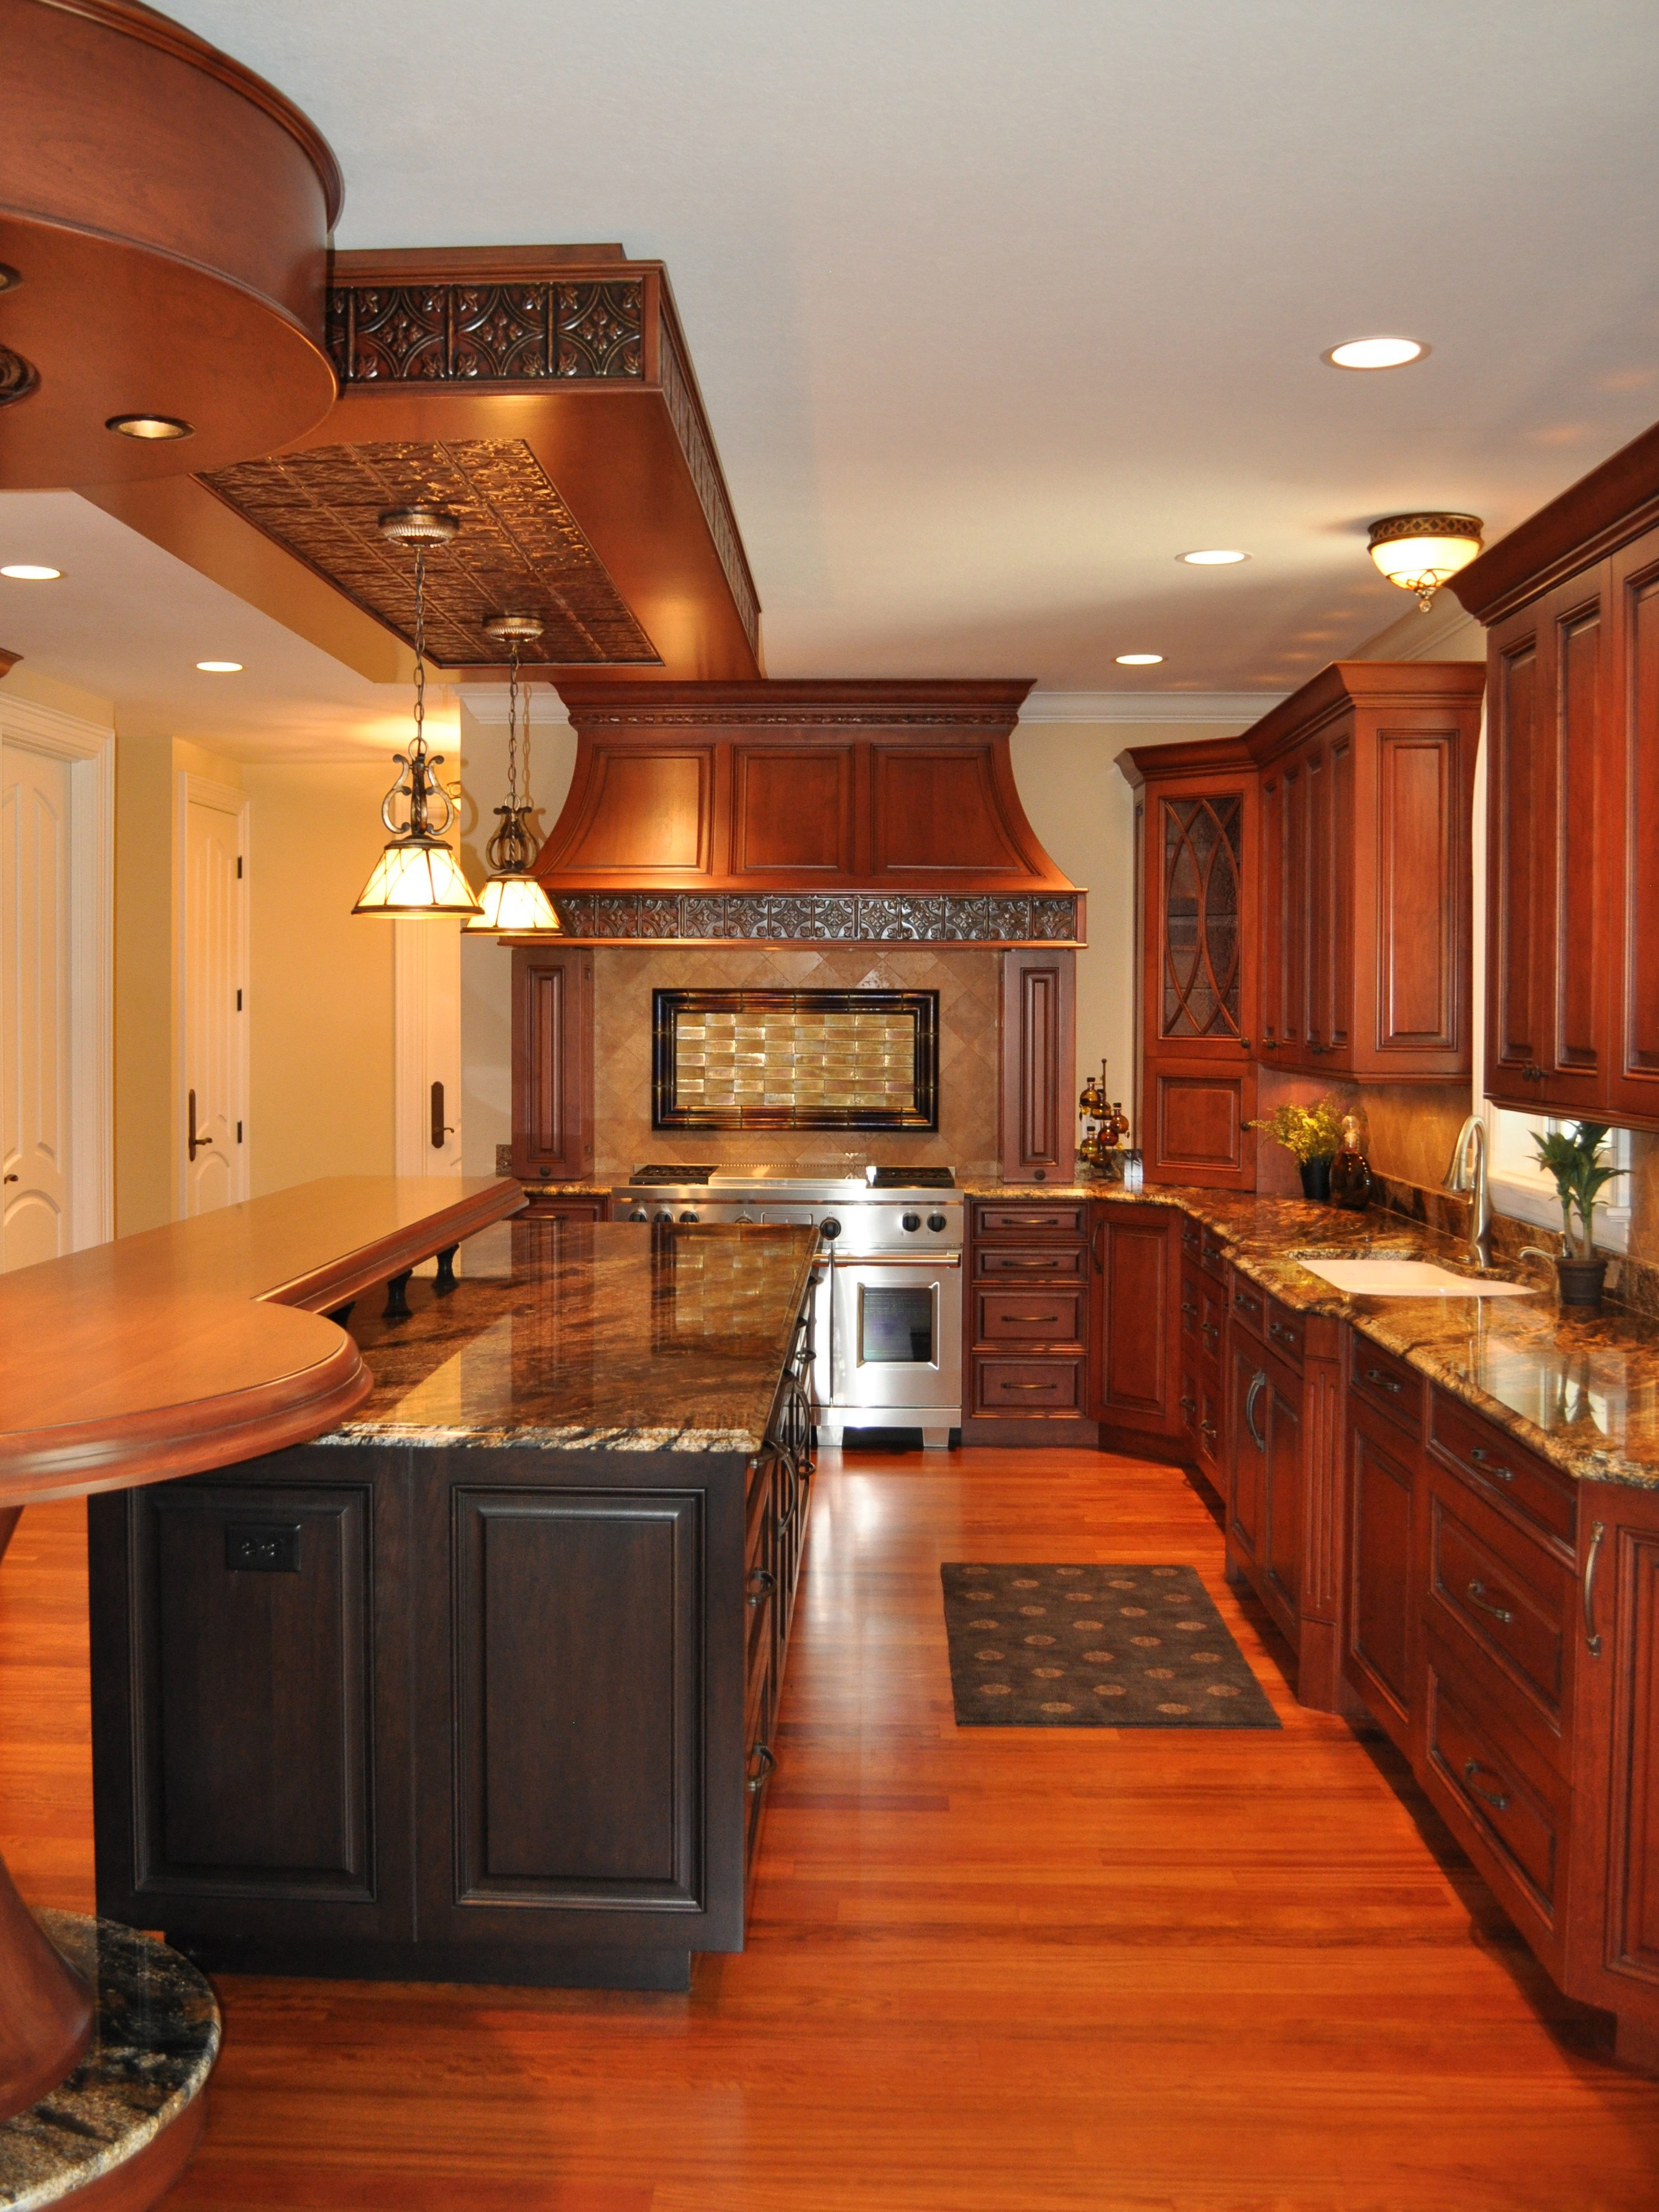 10 Kitchen Design Ideas For Long Narrow Room 18737